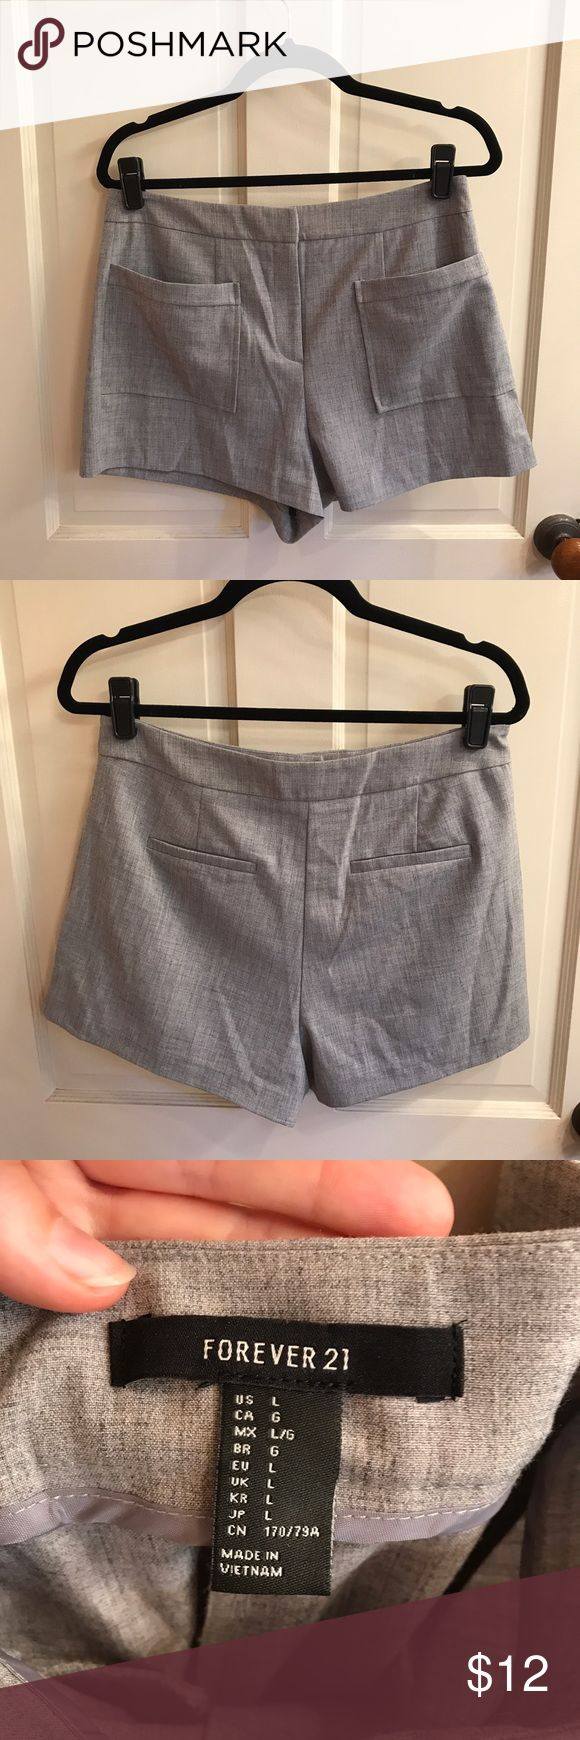 Forever 21 Grey Dress Shorts Grey dressy shorts from Forever 21. Perfect for a night out or for business attire. Size large. Very soft comfortable material. Brand new and never worn but tags are not attached. Forever 21 Shorts